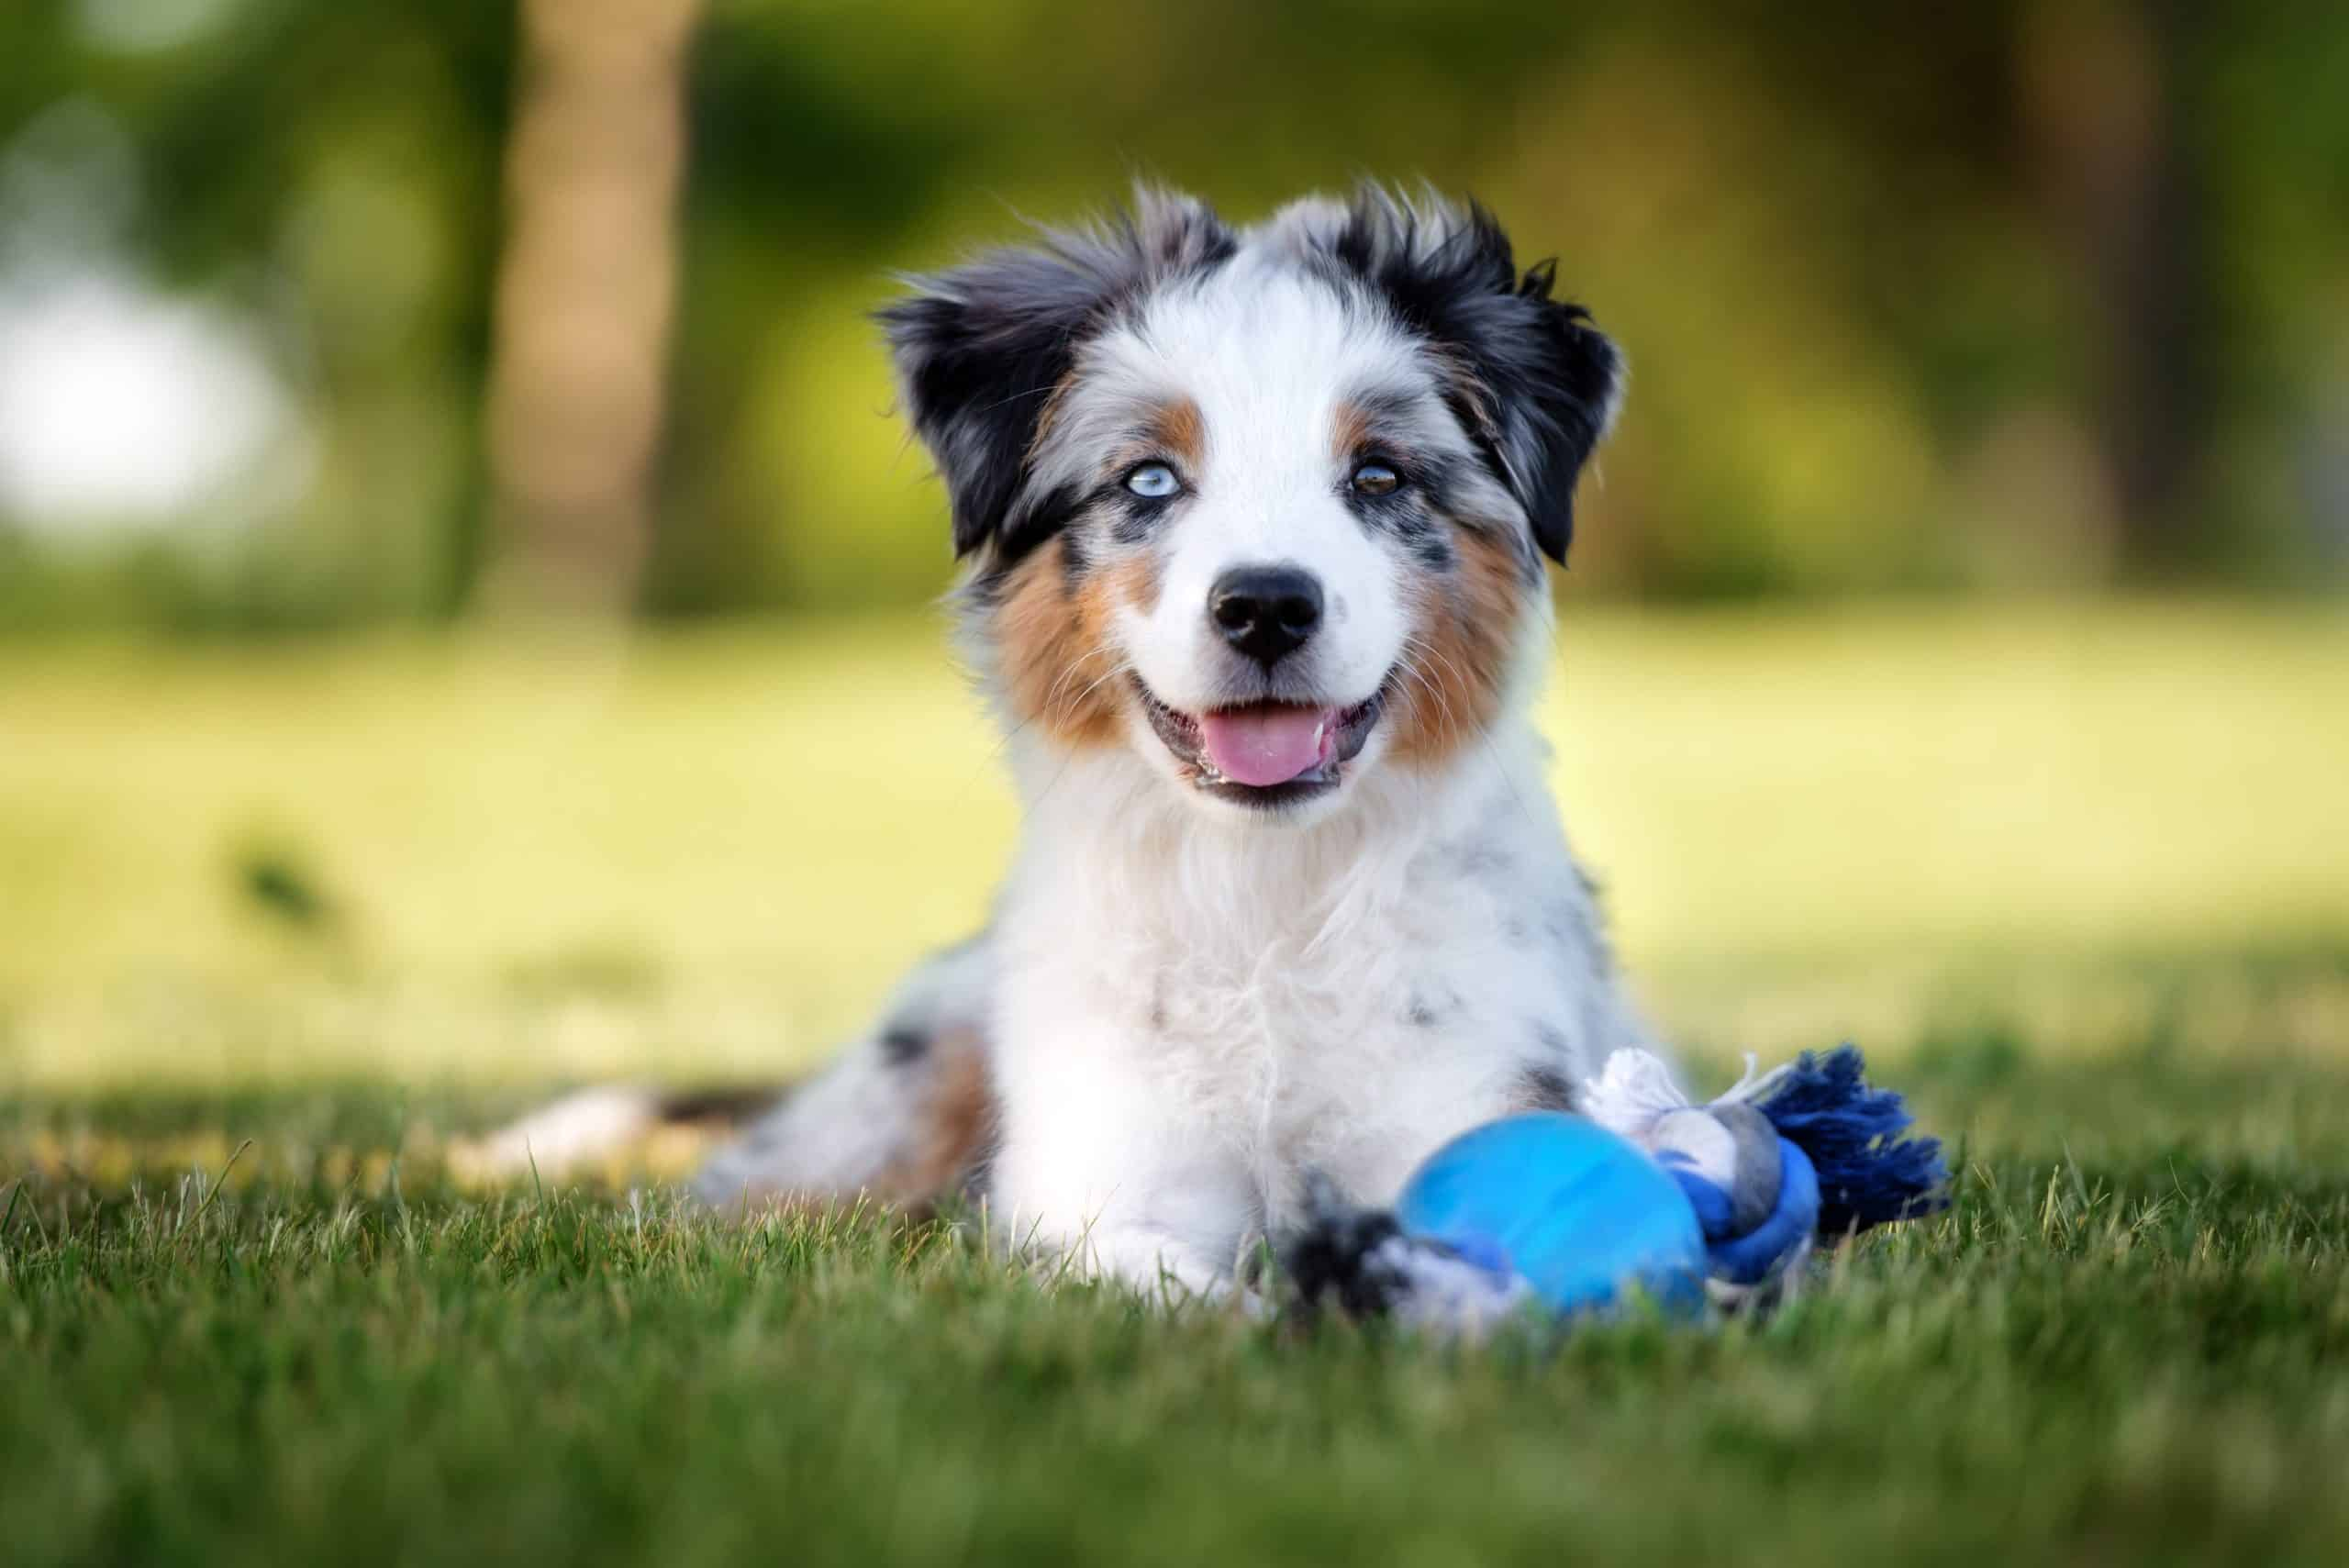 Happy Australian Shepherd puppy plays with chew toy. To ensure your dog lives their best life, focus on your pet's health. Make sure you provide healthy food, regular exercise, CBD supplements.